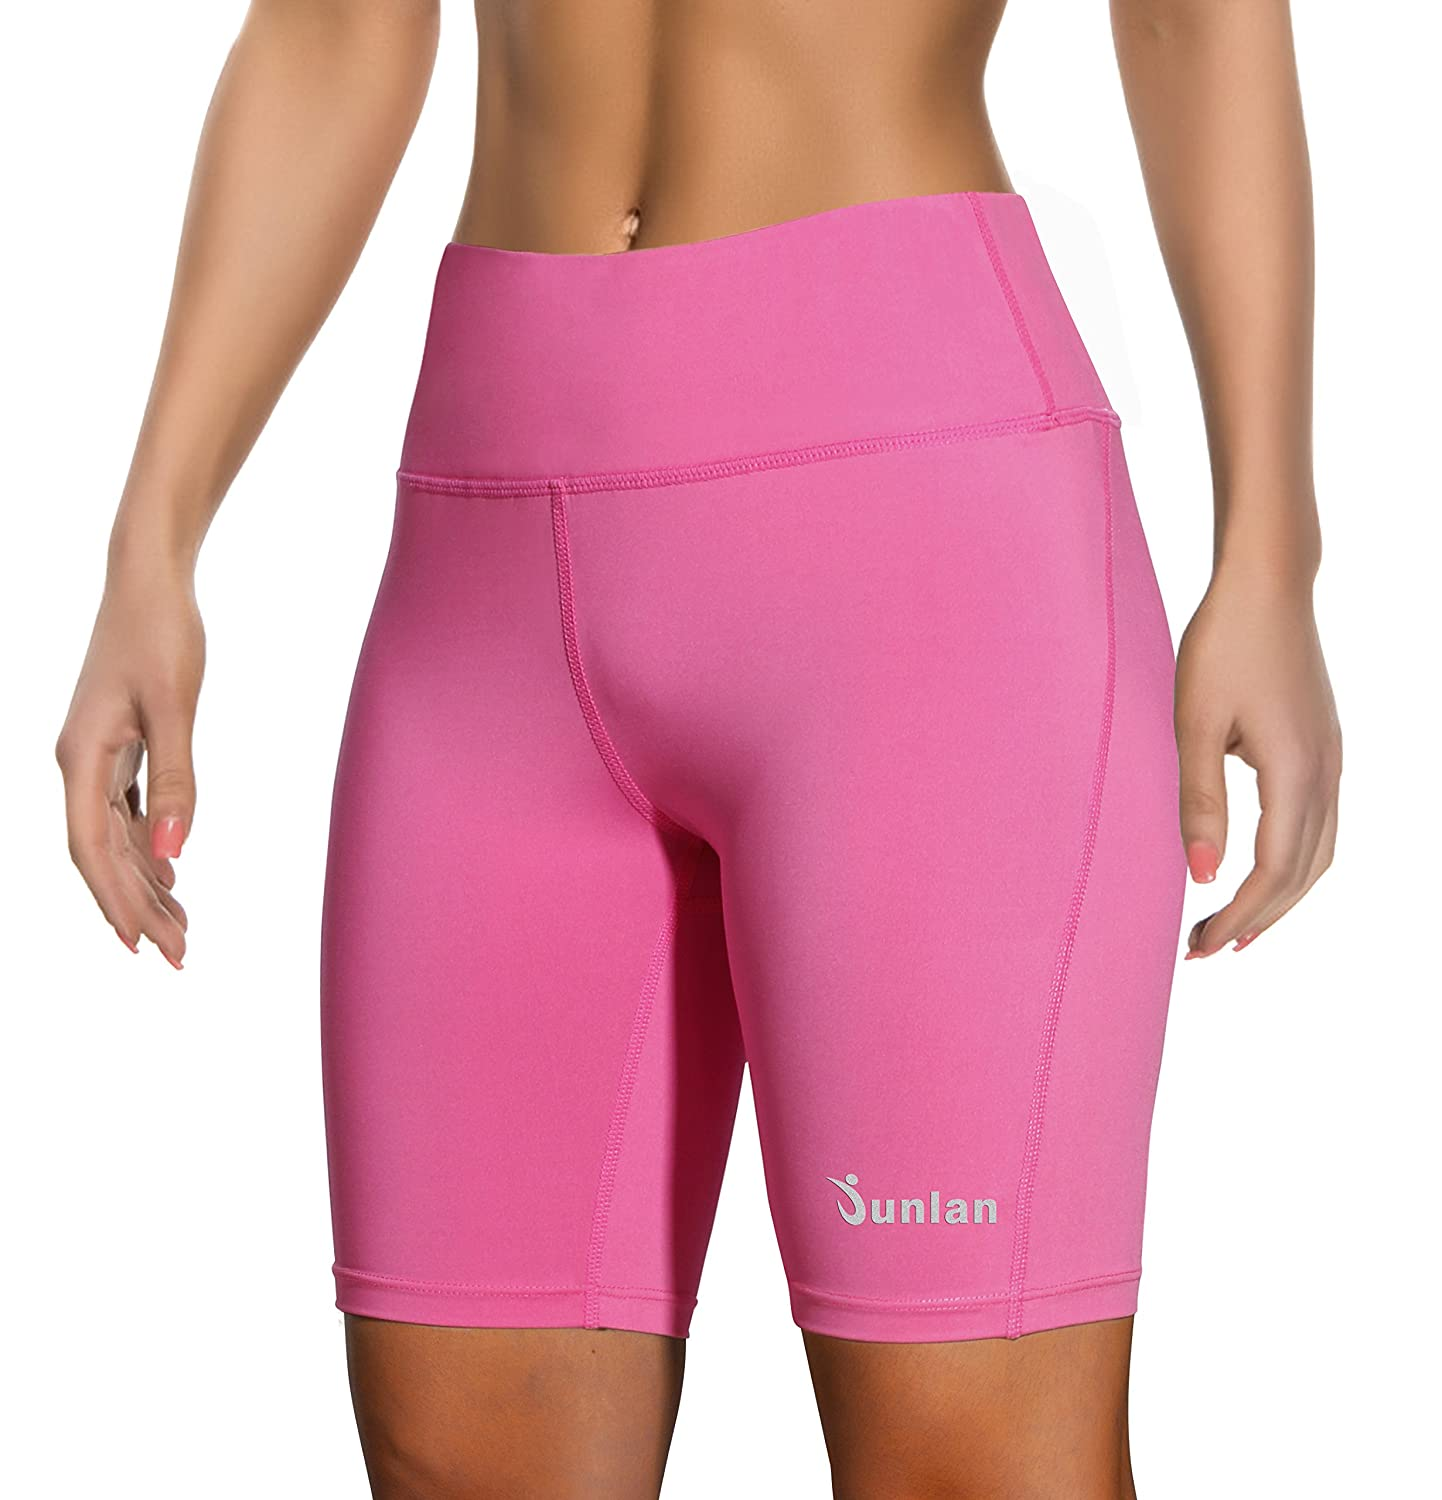 5e4898fddb39d 90% Polyester 10% Spandex: Non see-through, moisture-wicking, breathable  and stretchy fabric,womens sport pants with this fabric is ...